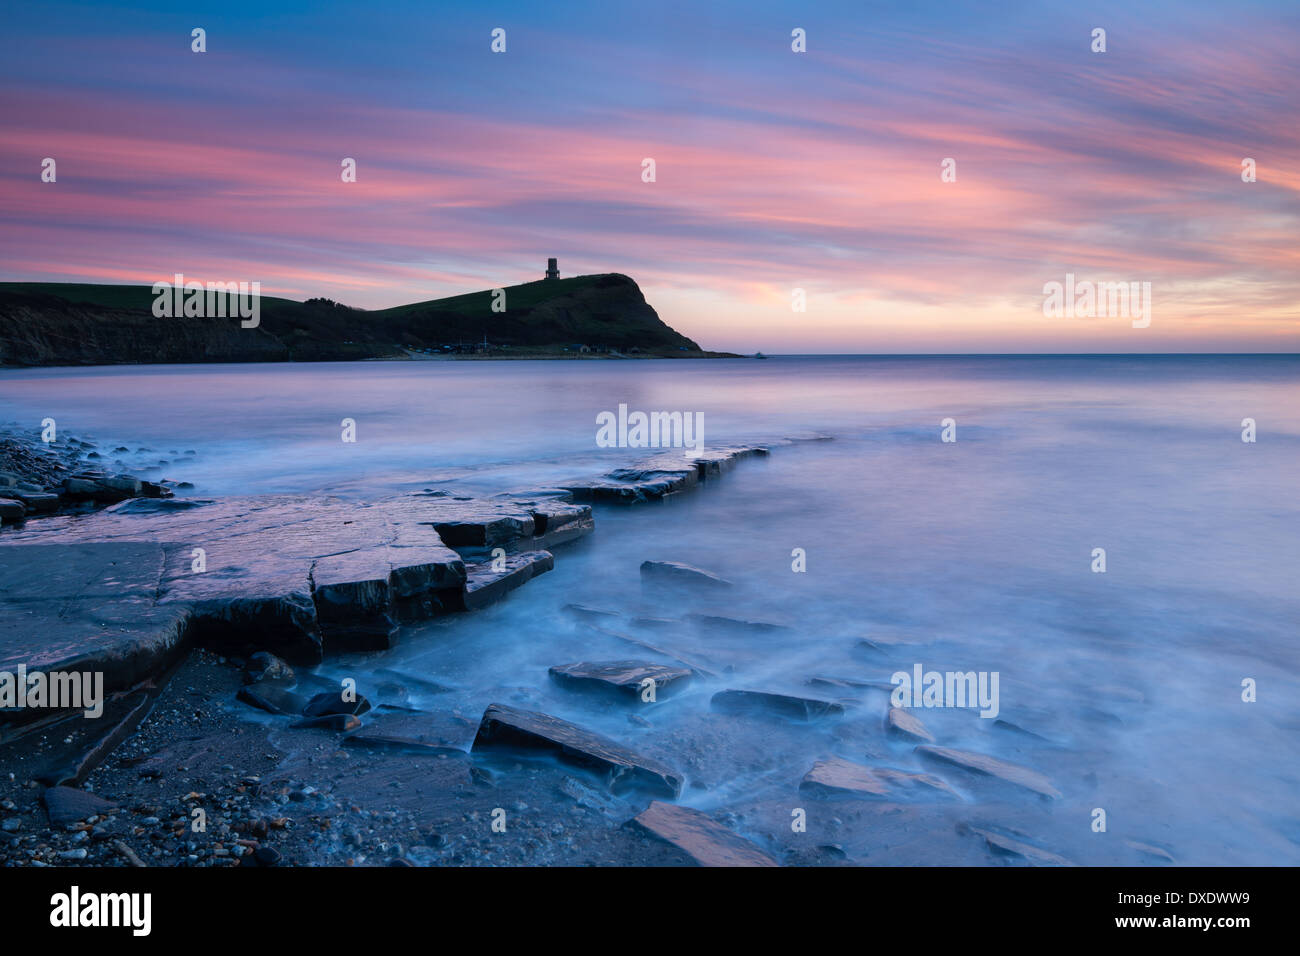 Dusk at Kimmeridge Bay, Jurassic Coast, Dorset, England - Stock Image